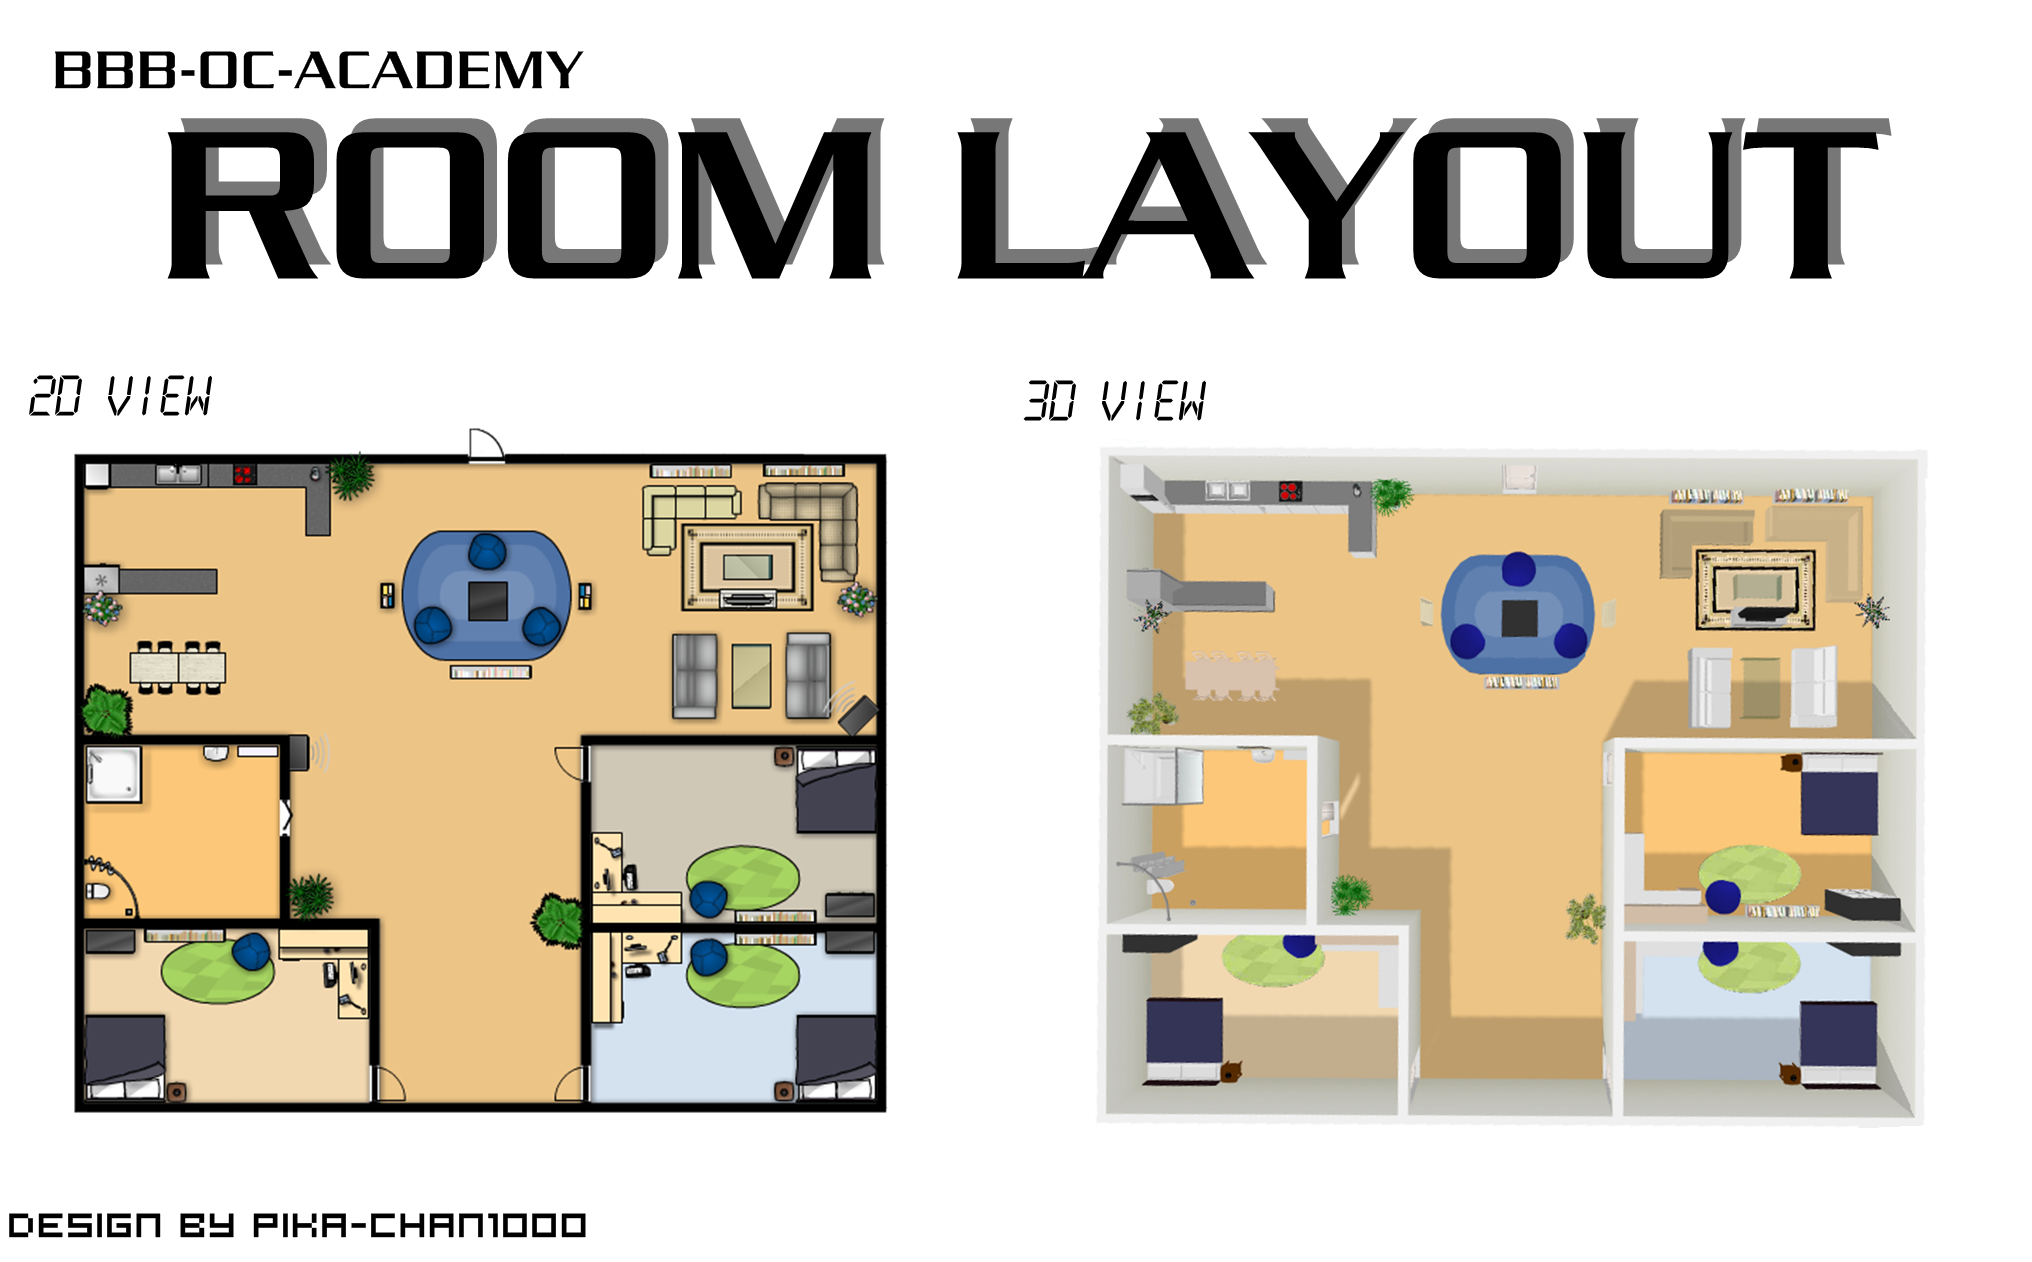 Room layout 2d and 3d by nuazka on deviantart Room layout design